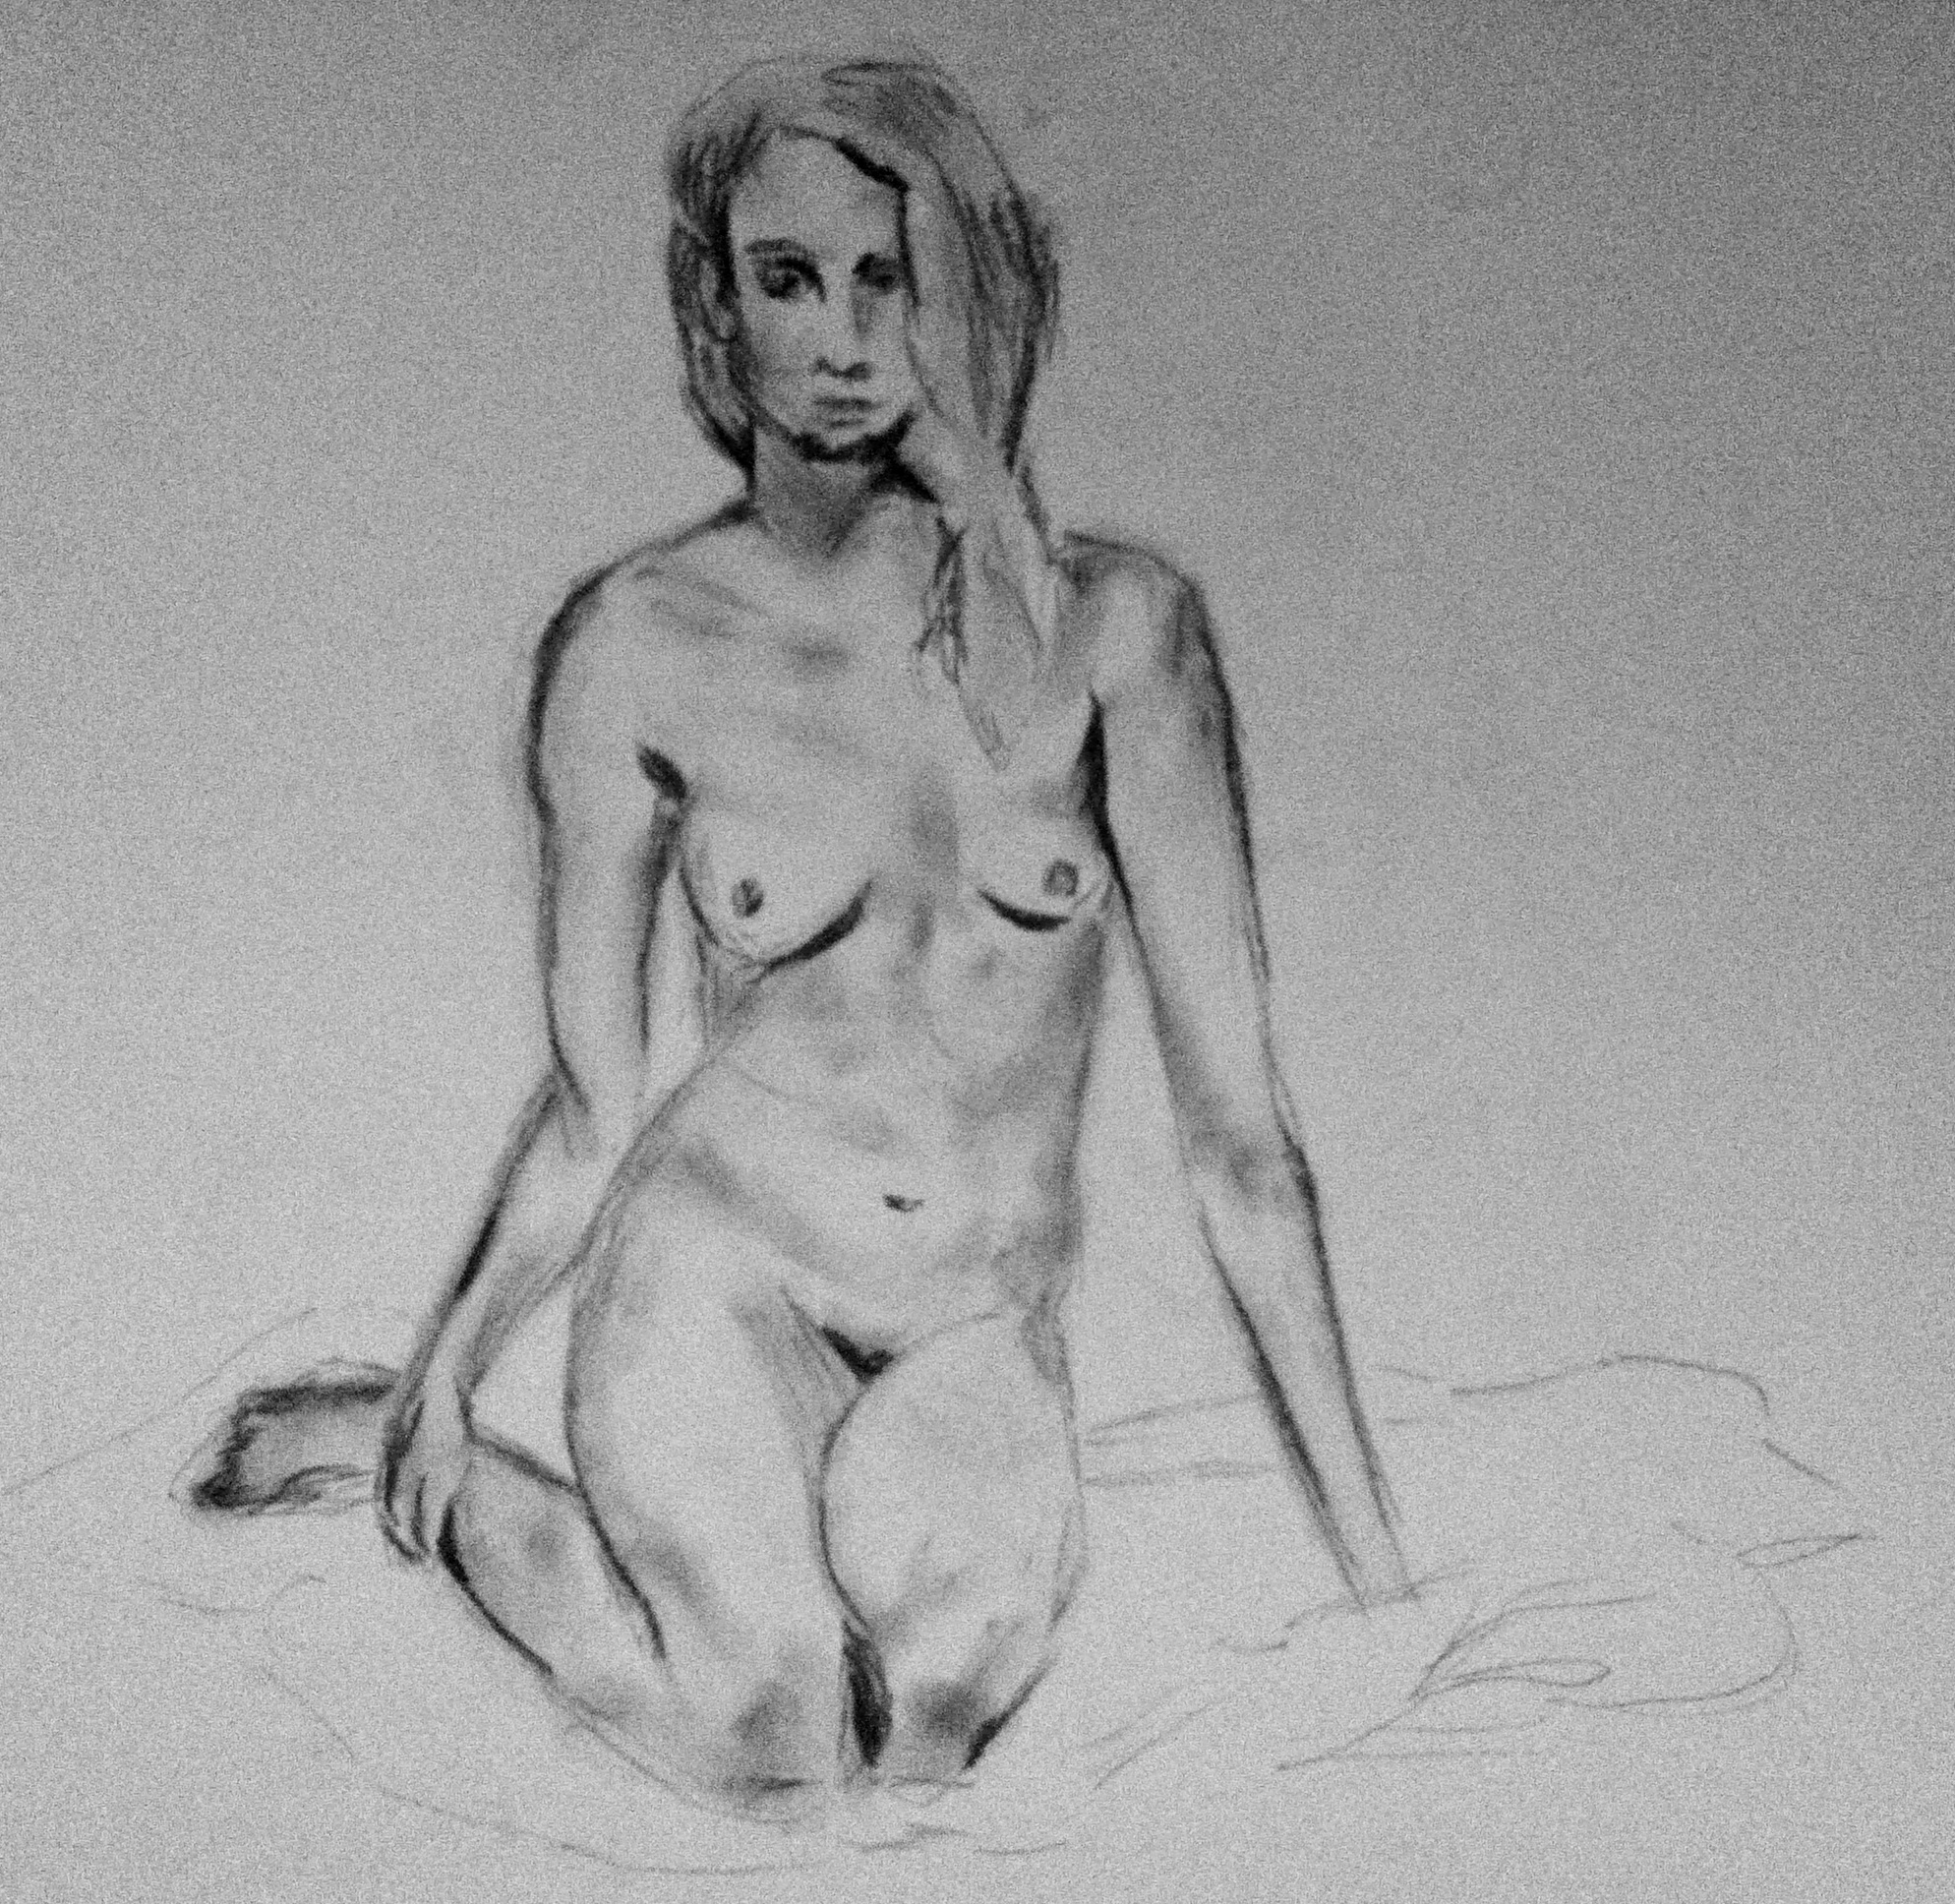 Life Drawing - Compressed charcoal on 18x24 newsprint